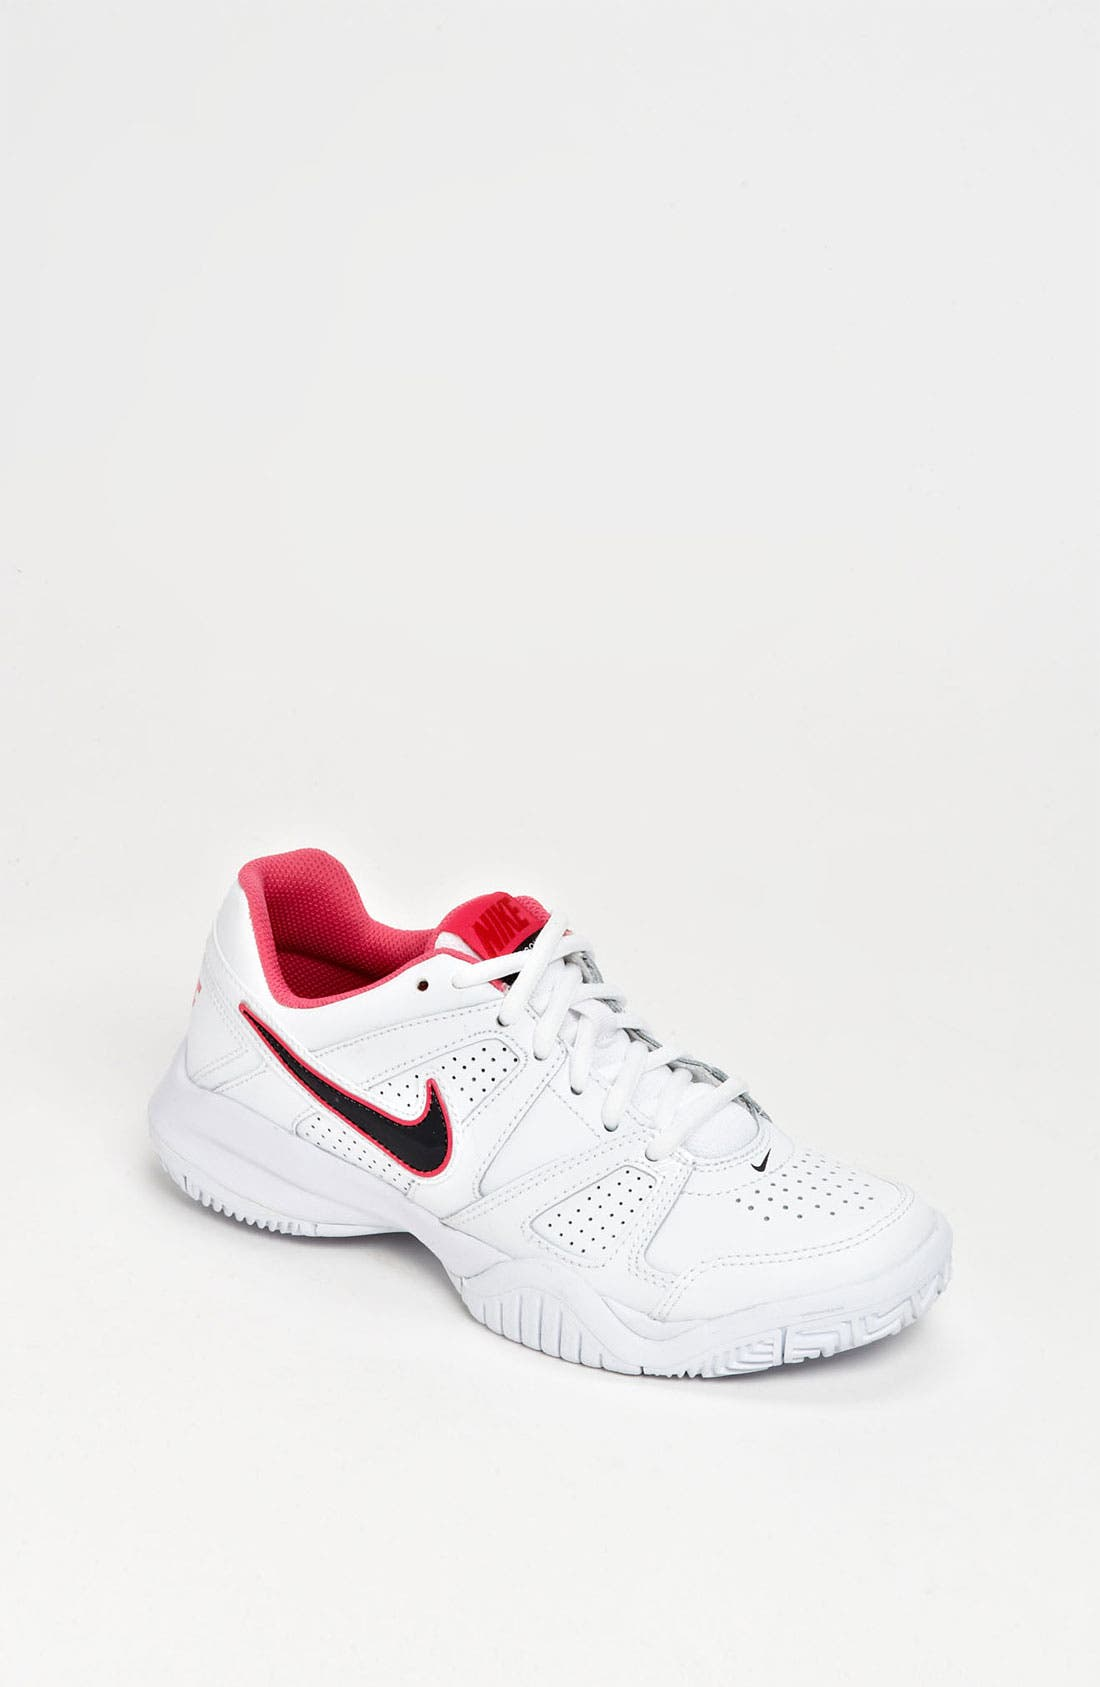 Alternate Image 1 Selected - Nike 'City Court 7' Tennis Shoe (Big Kid)